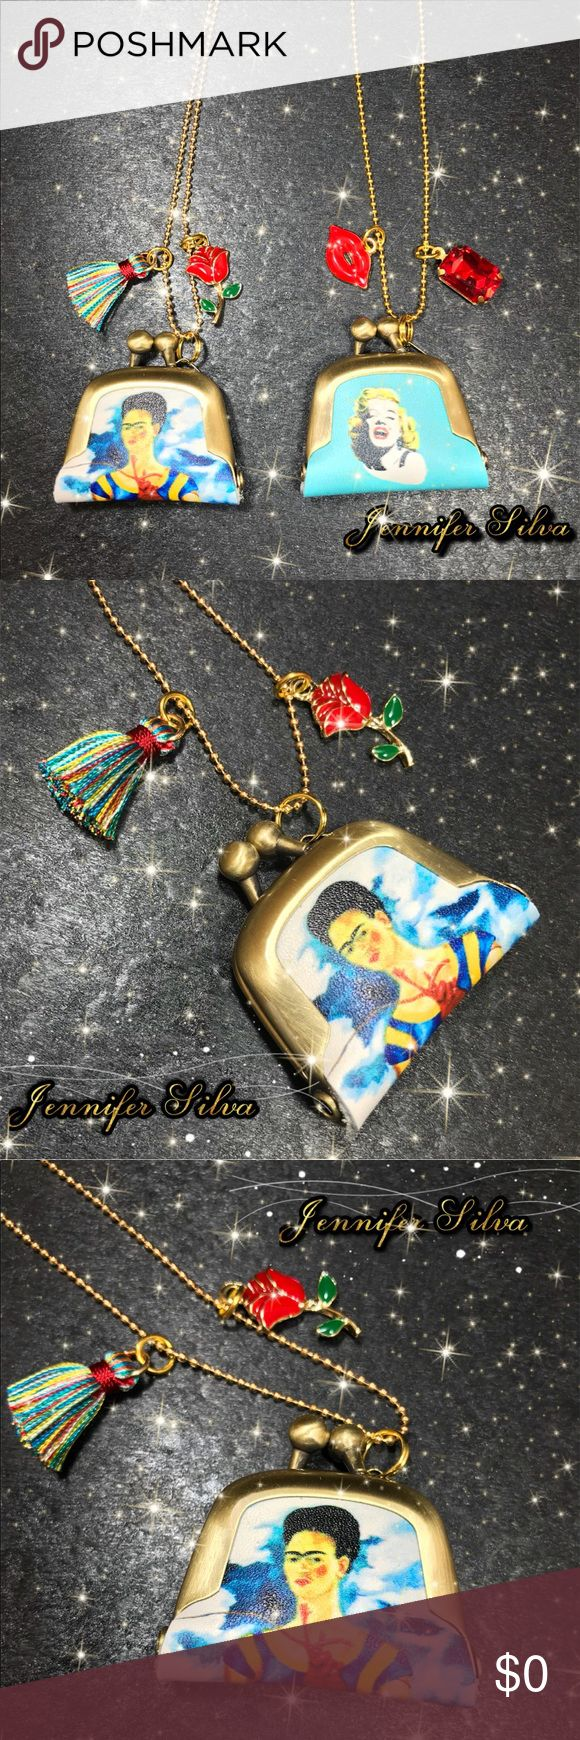 """Frida kahlo and Marilyn Monroe Purse Necklace Frida kahlo and Marilyn Monroe Leather Pouch Purse Pendant Necklace I have been dying to show you this beauty!   This is a cute and quirky purse pendant necklace. A delicate little purse with a gorgeous woman image is attached to a 24"""" or 27"""" ball chain  Purse is about 40x45mm Purse Material: Antique Bronze Plated Frame & Leather   ✬✬Colors may appear different on various monitors✬✬  Listing is for necklace only. Jewelry Necklaces"""